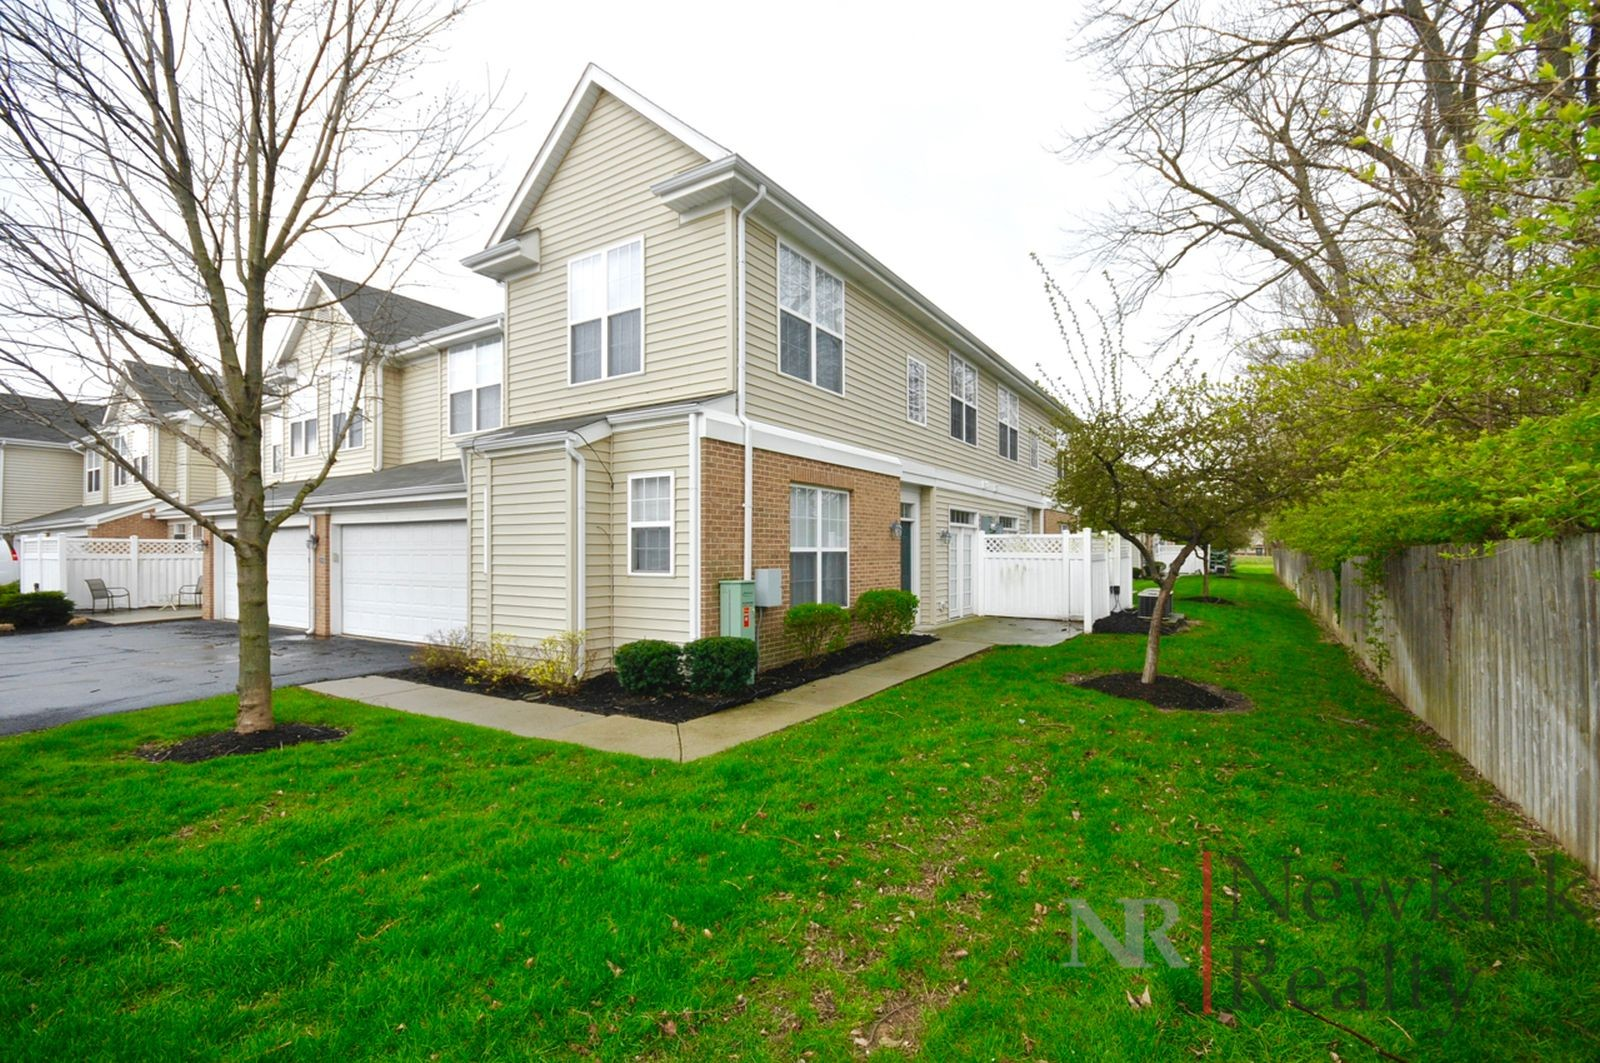 2354 colfax lane indianapolis in 46260 2 bedroom for 2 bedroom 2 bathroom apartments for rent